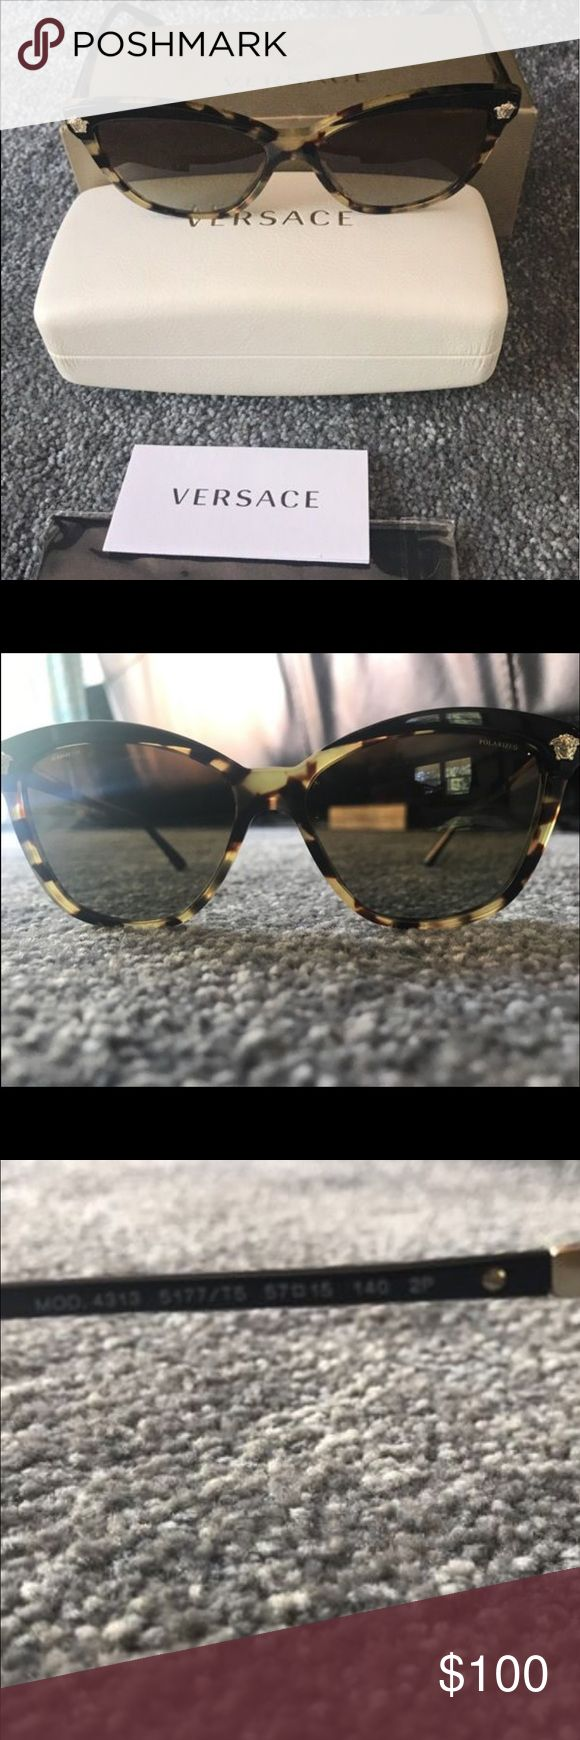 Versace Glasses New never worn no scratches dings perfect condition Versace polarized glasses please view all picturesand yes authentic Versace price drop 7/7/17 Versace Accessories Sunglasses